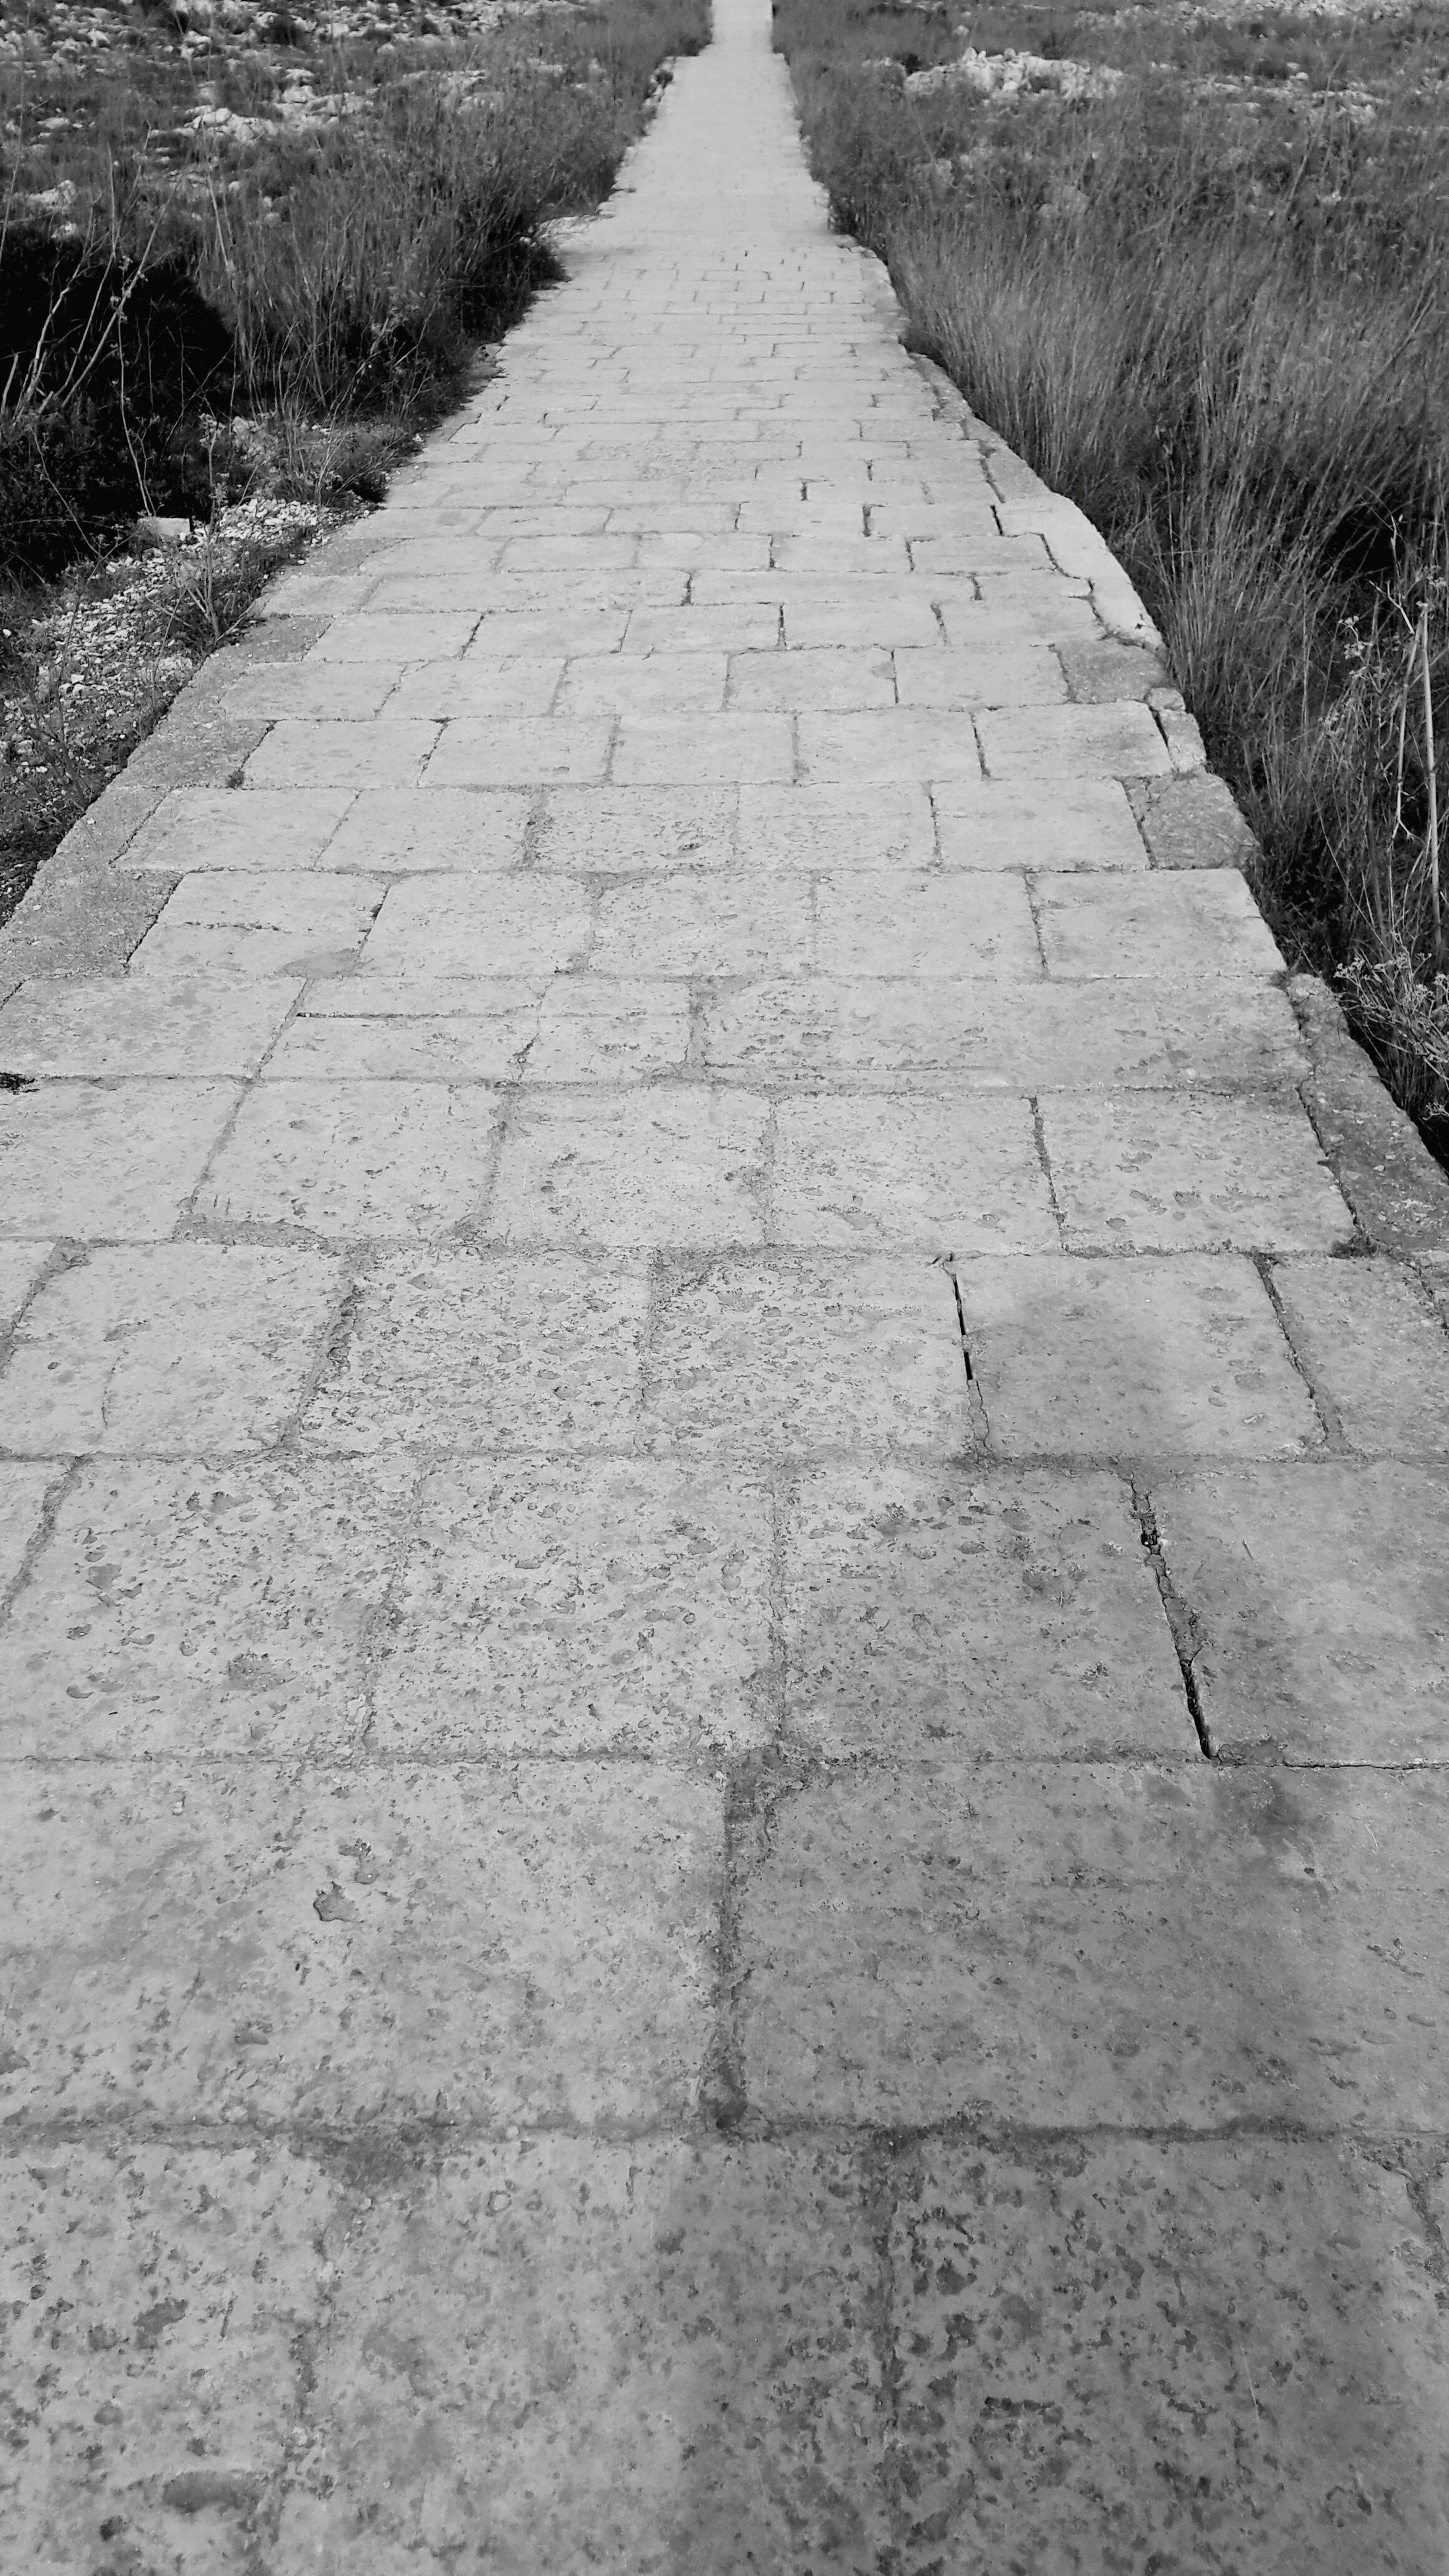 the way forward, day, outdoors, stone tile, walkway, nature, no people